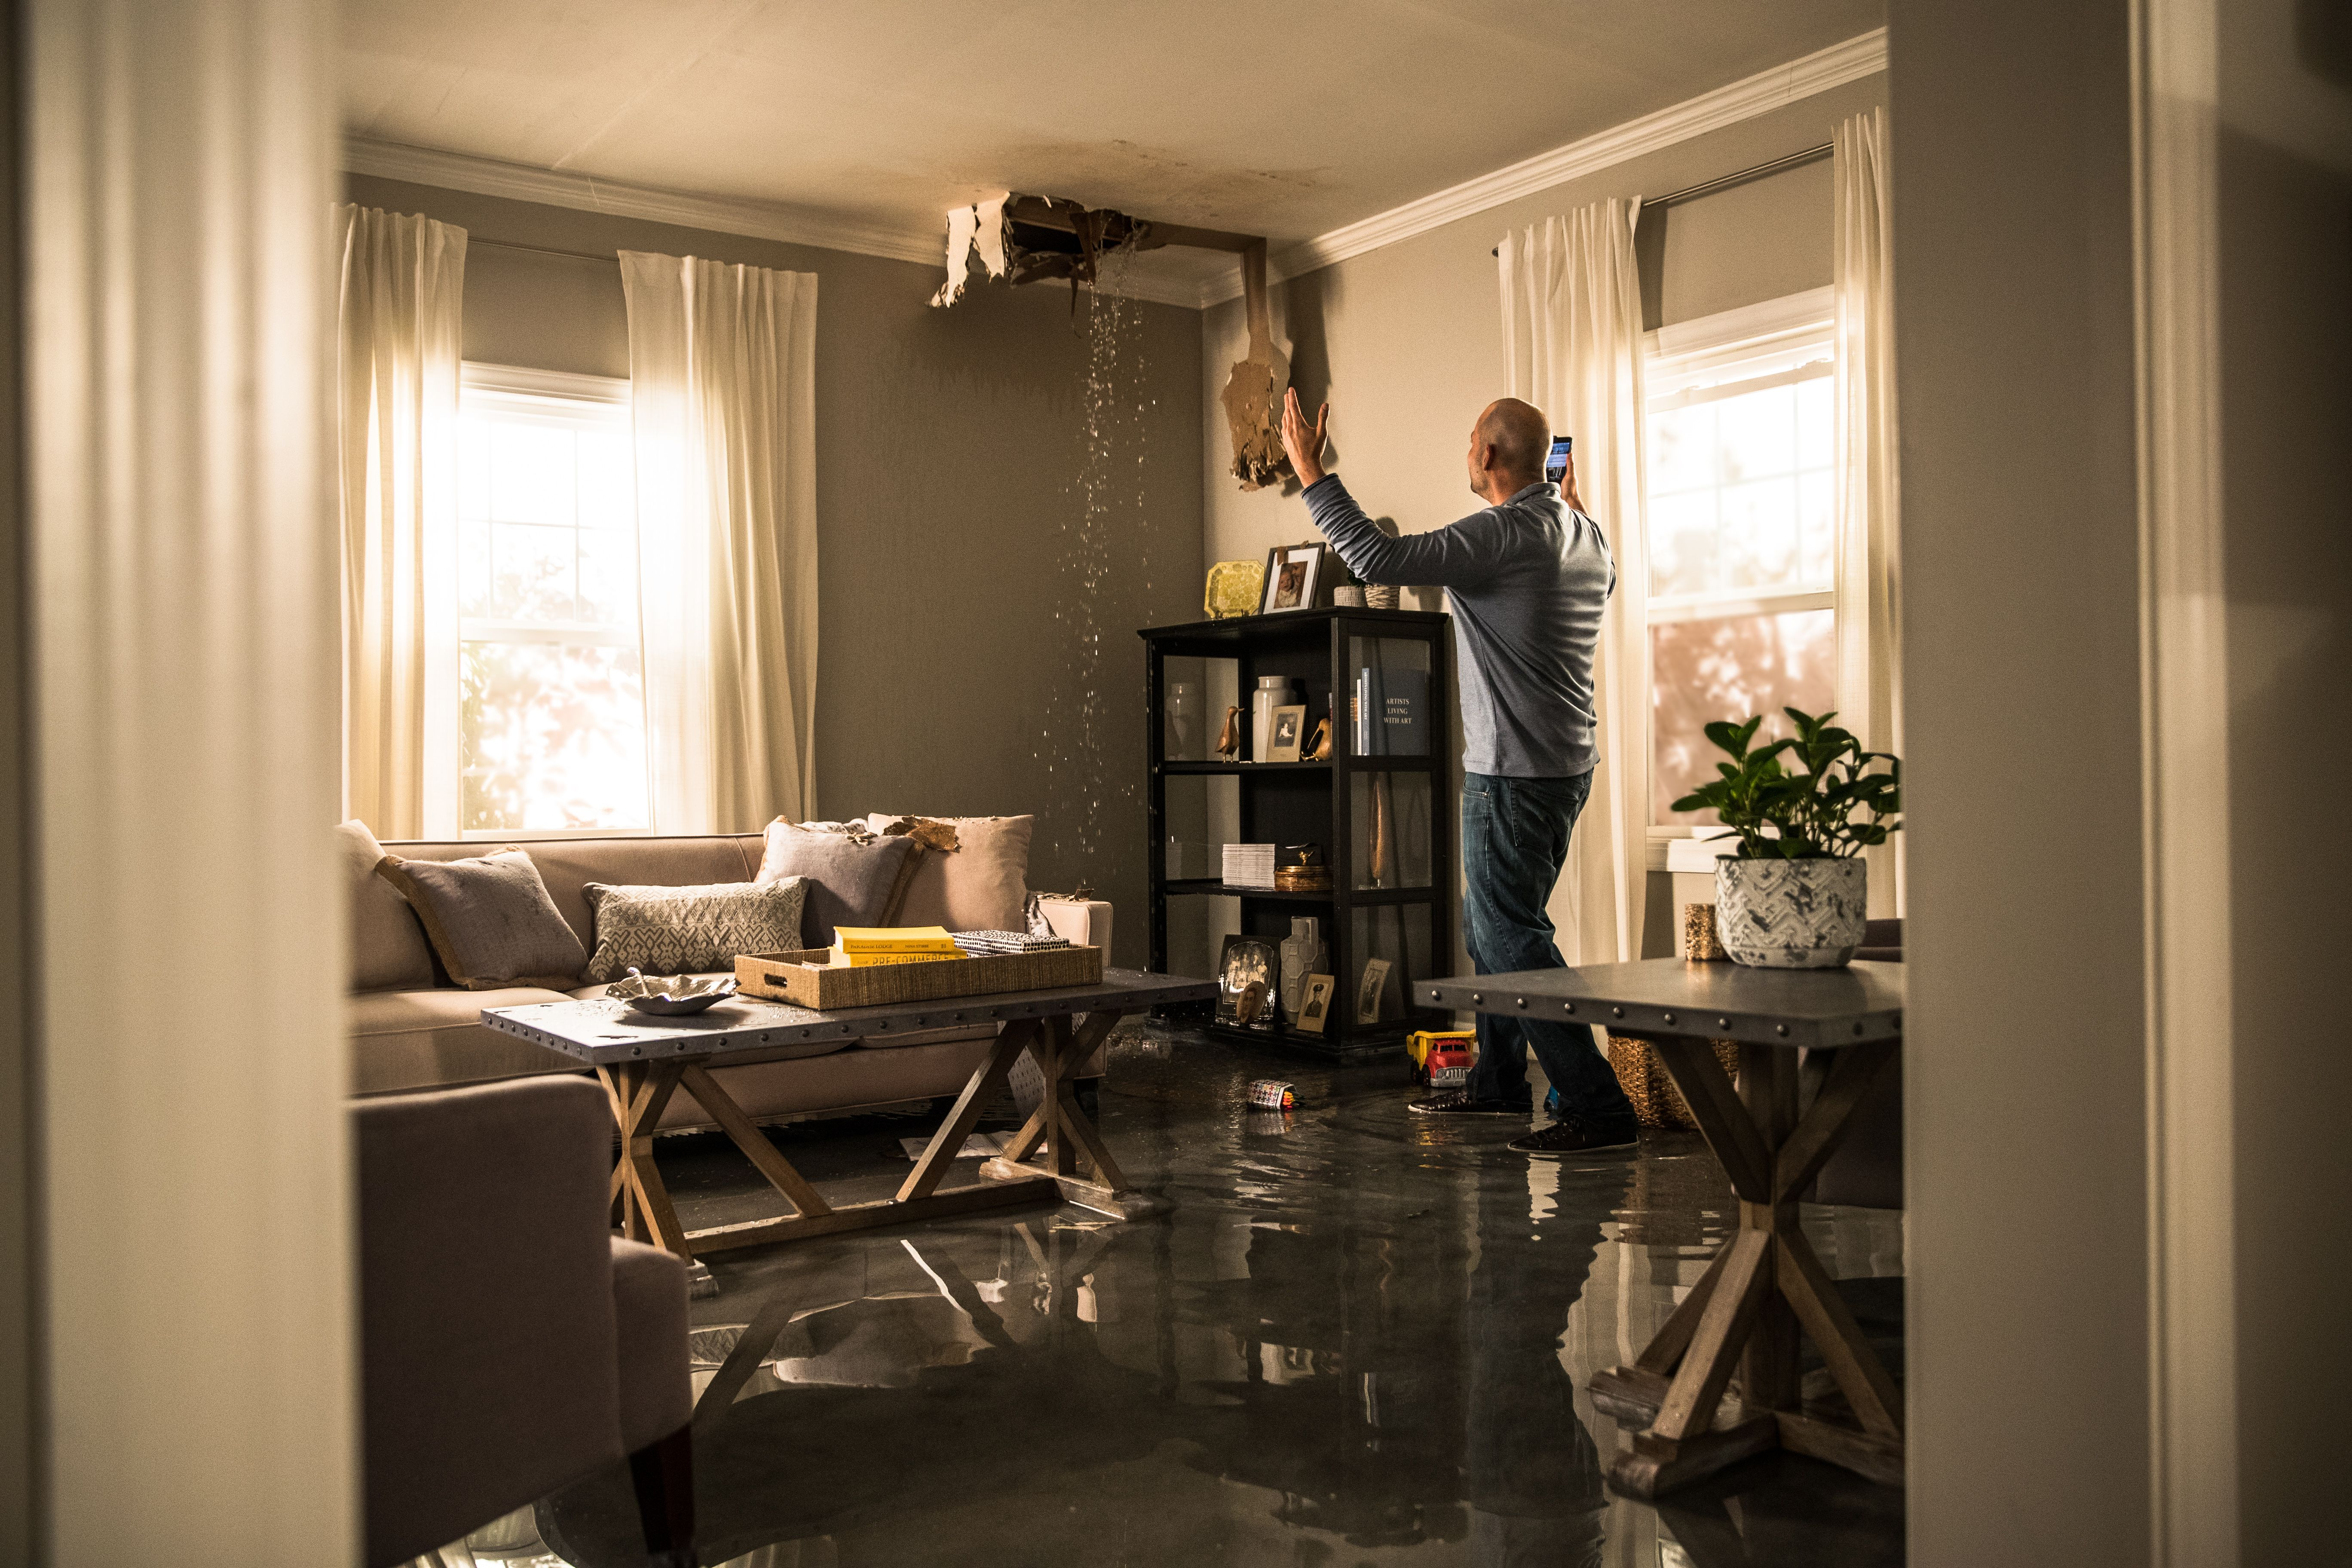 Call 678 293 0297 For Water Damage Restoration In Sandy Springs Ga In 2020 Damage Restoration Water Damage Restoration Services